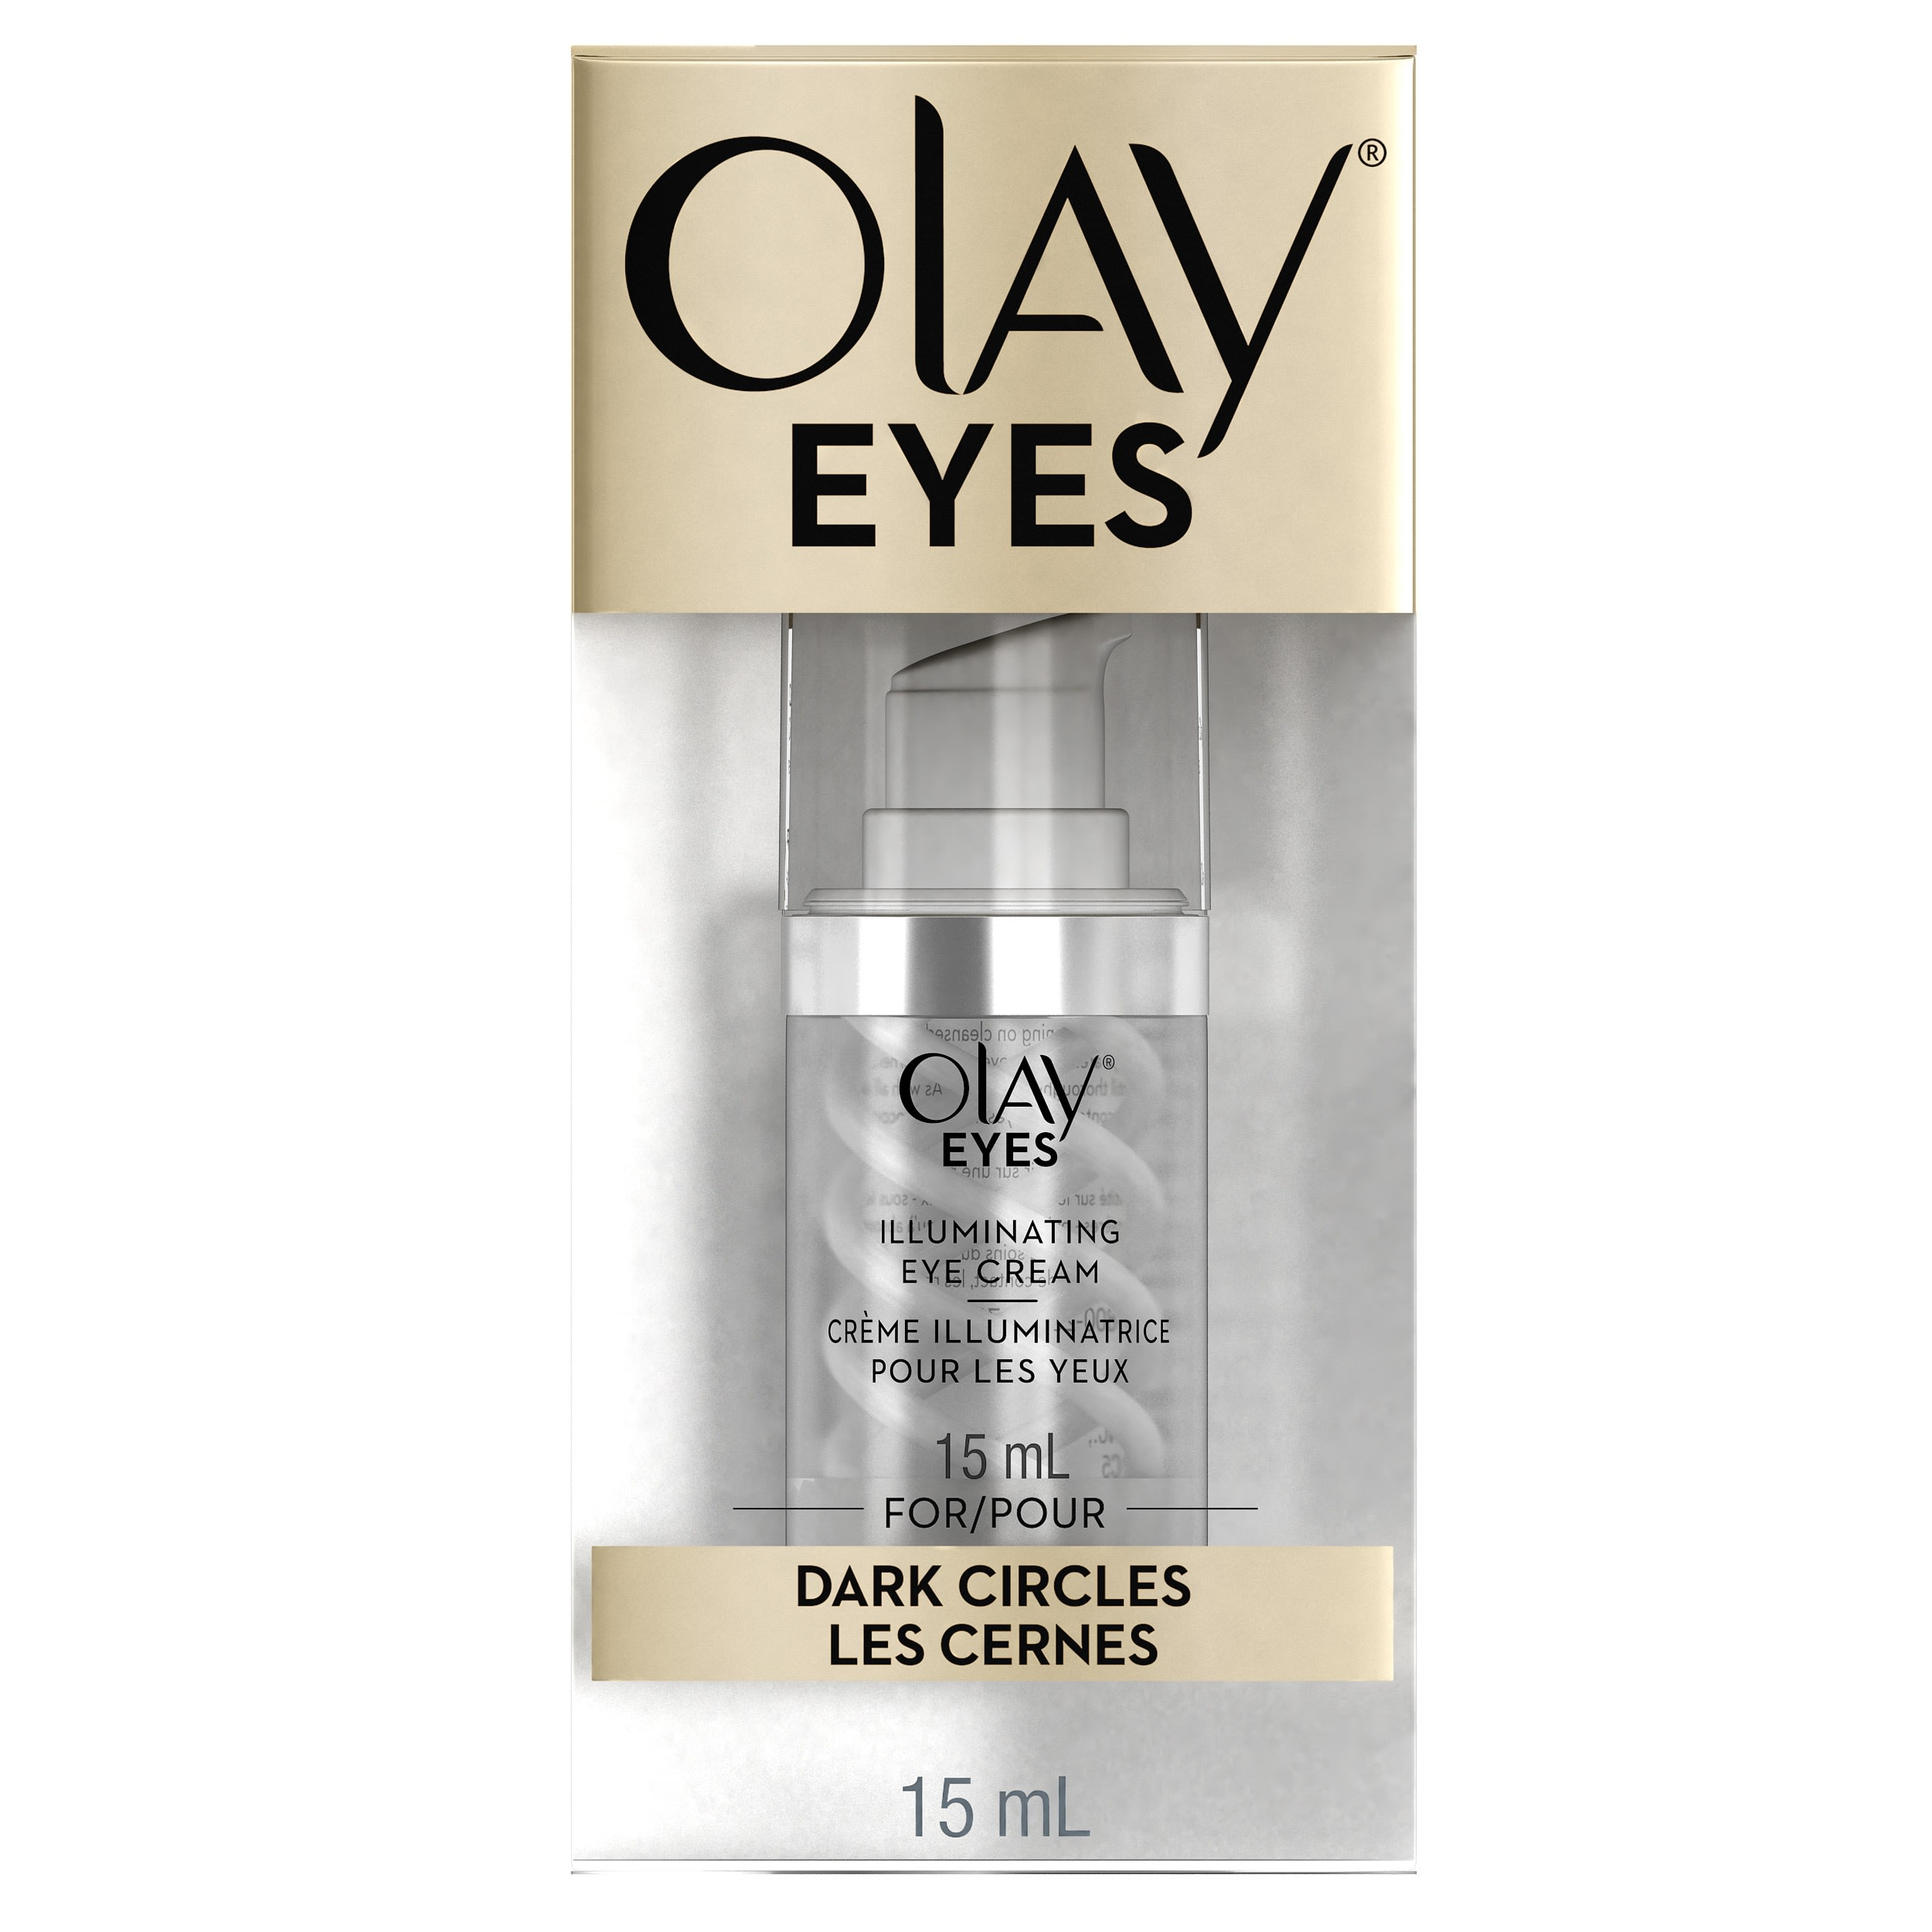 olay_eyes_illuminating_eye_cream-2